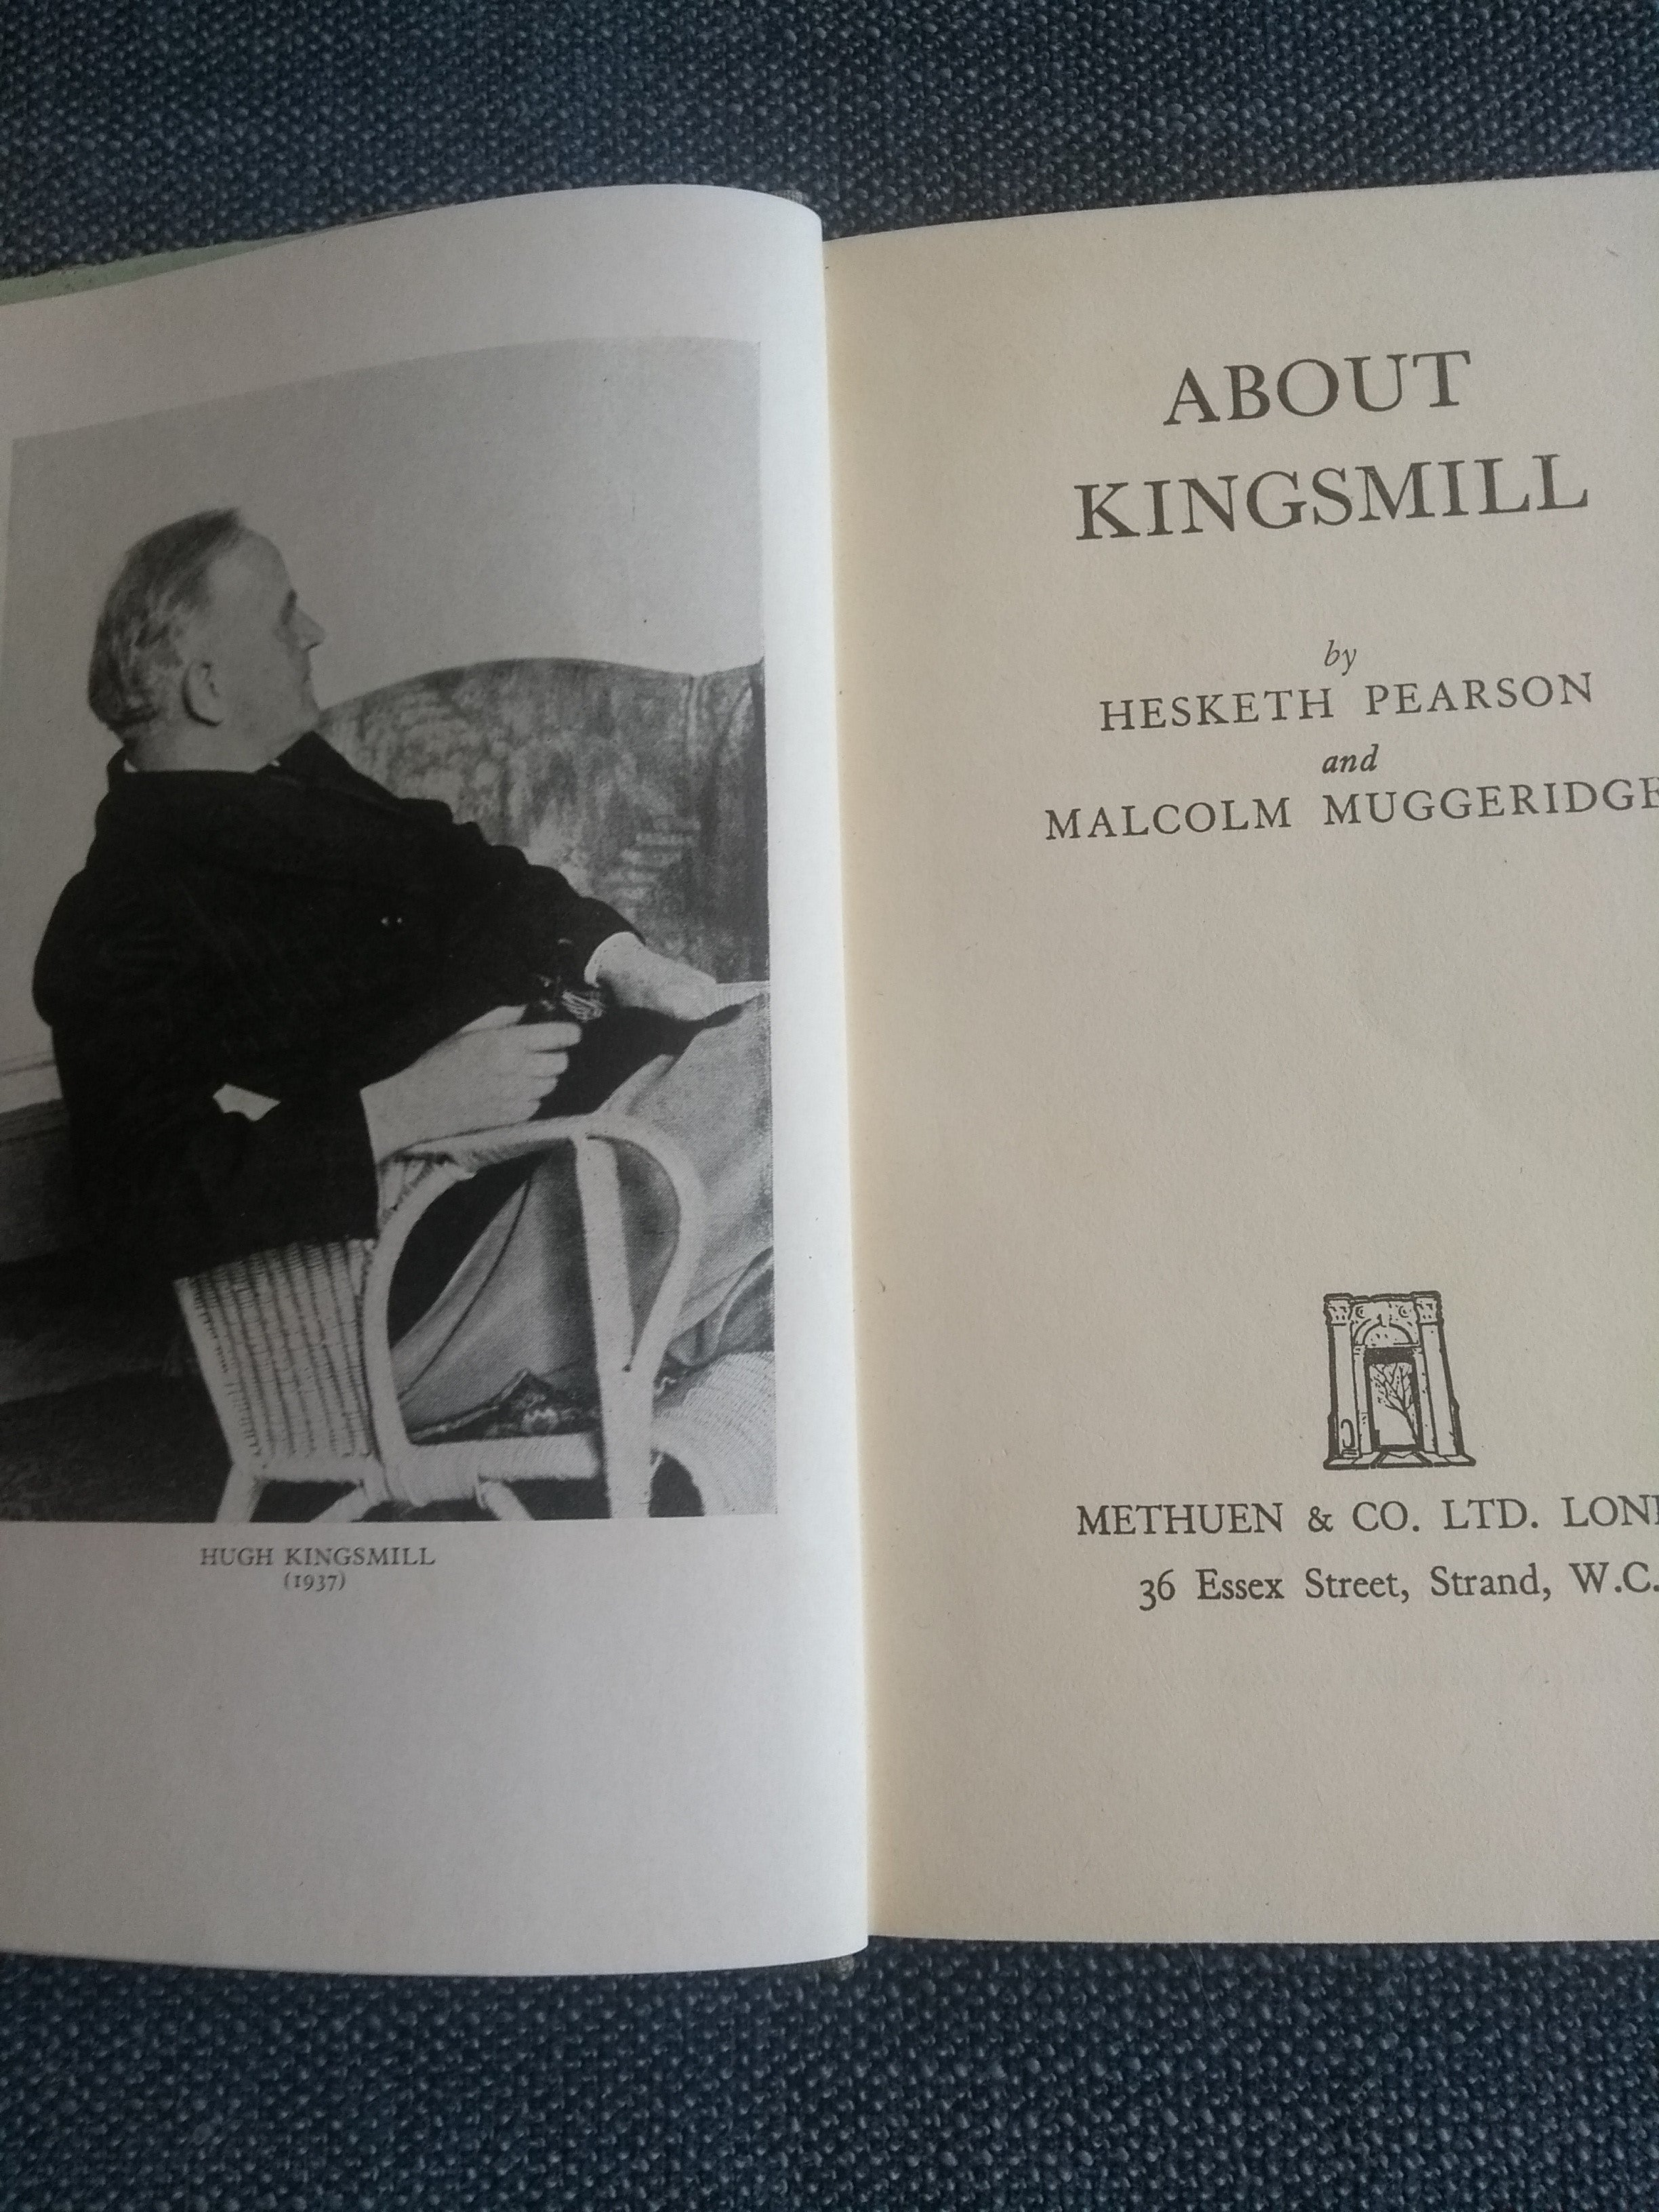 About Kingsmill, by Hesketh Pearson and Malcolm Muggeridge